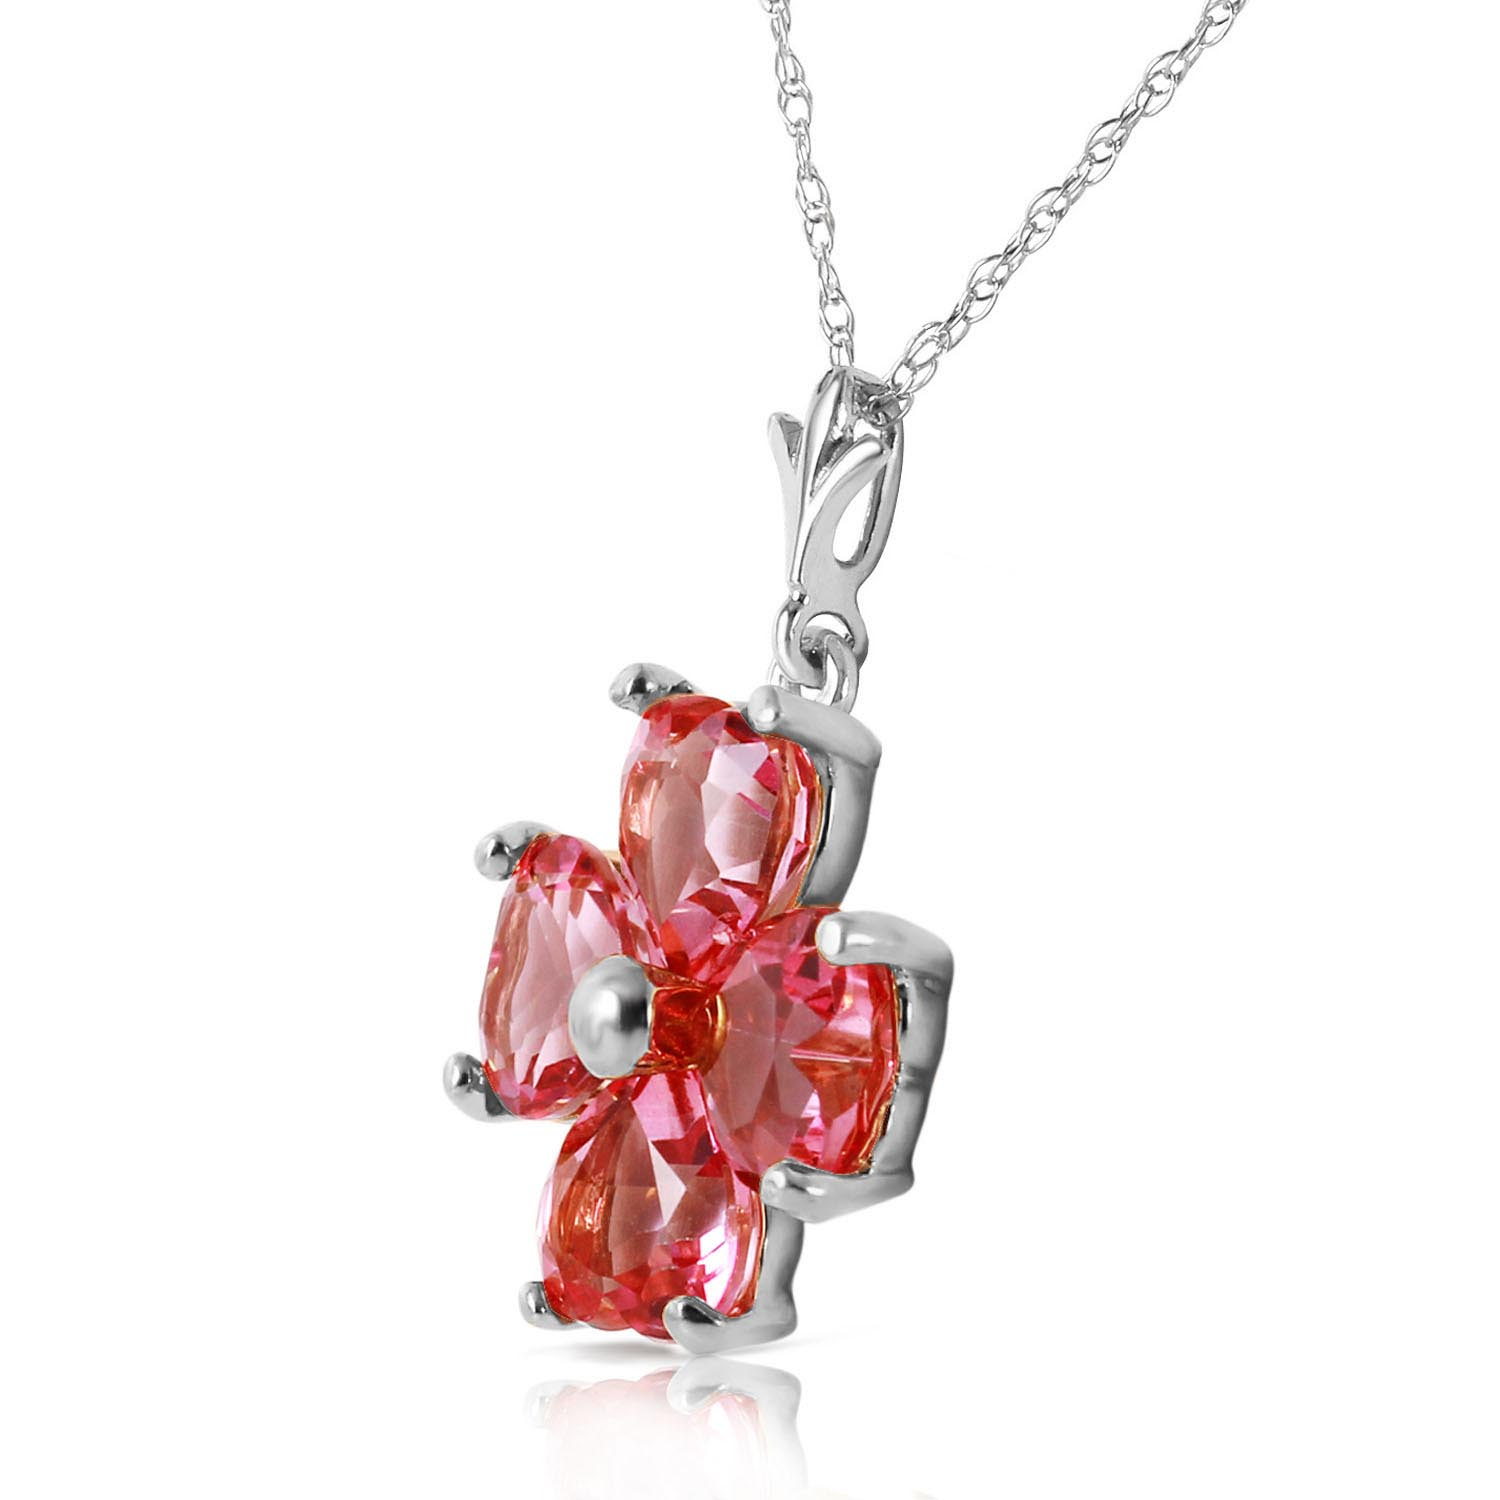 Pink Topaz Four Leaf Clover Pendant Necklace 3.8 ctw in 9ct White Gold